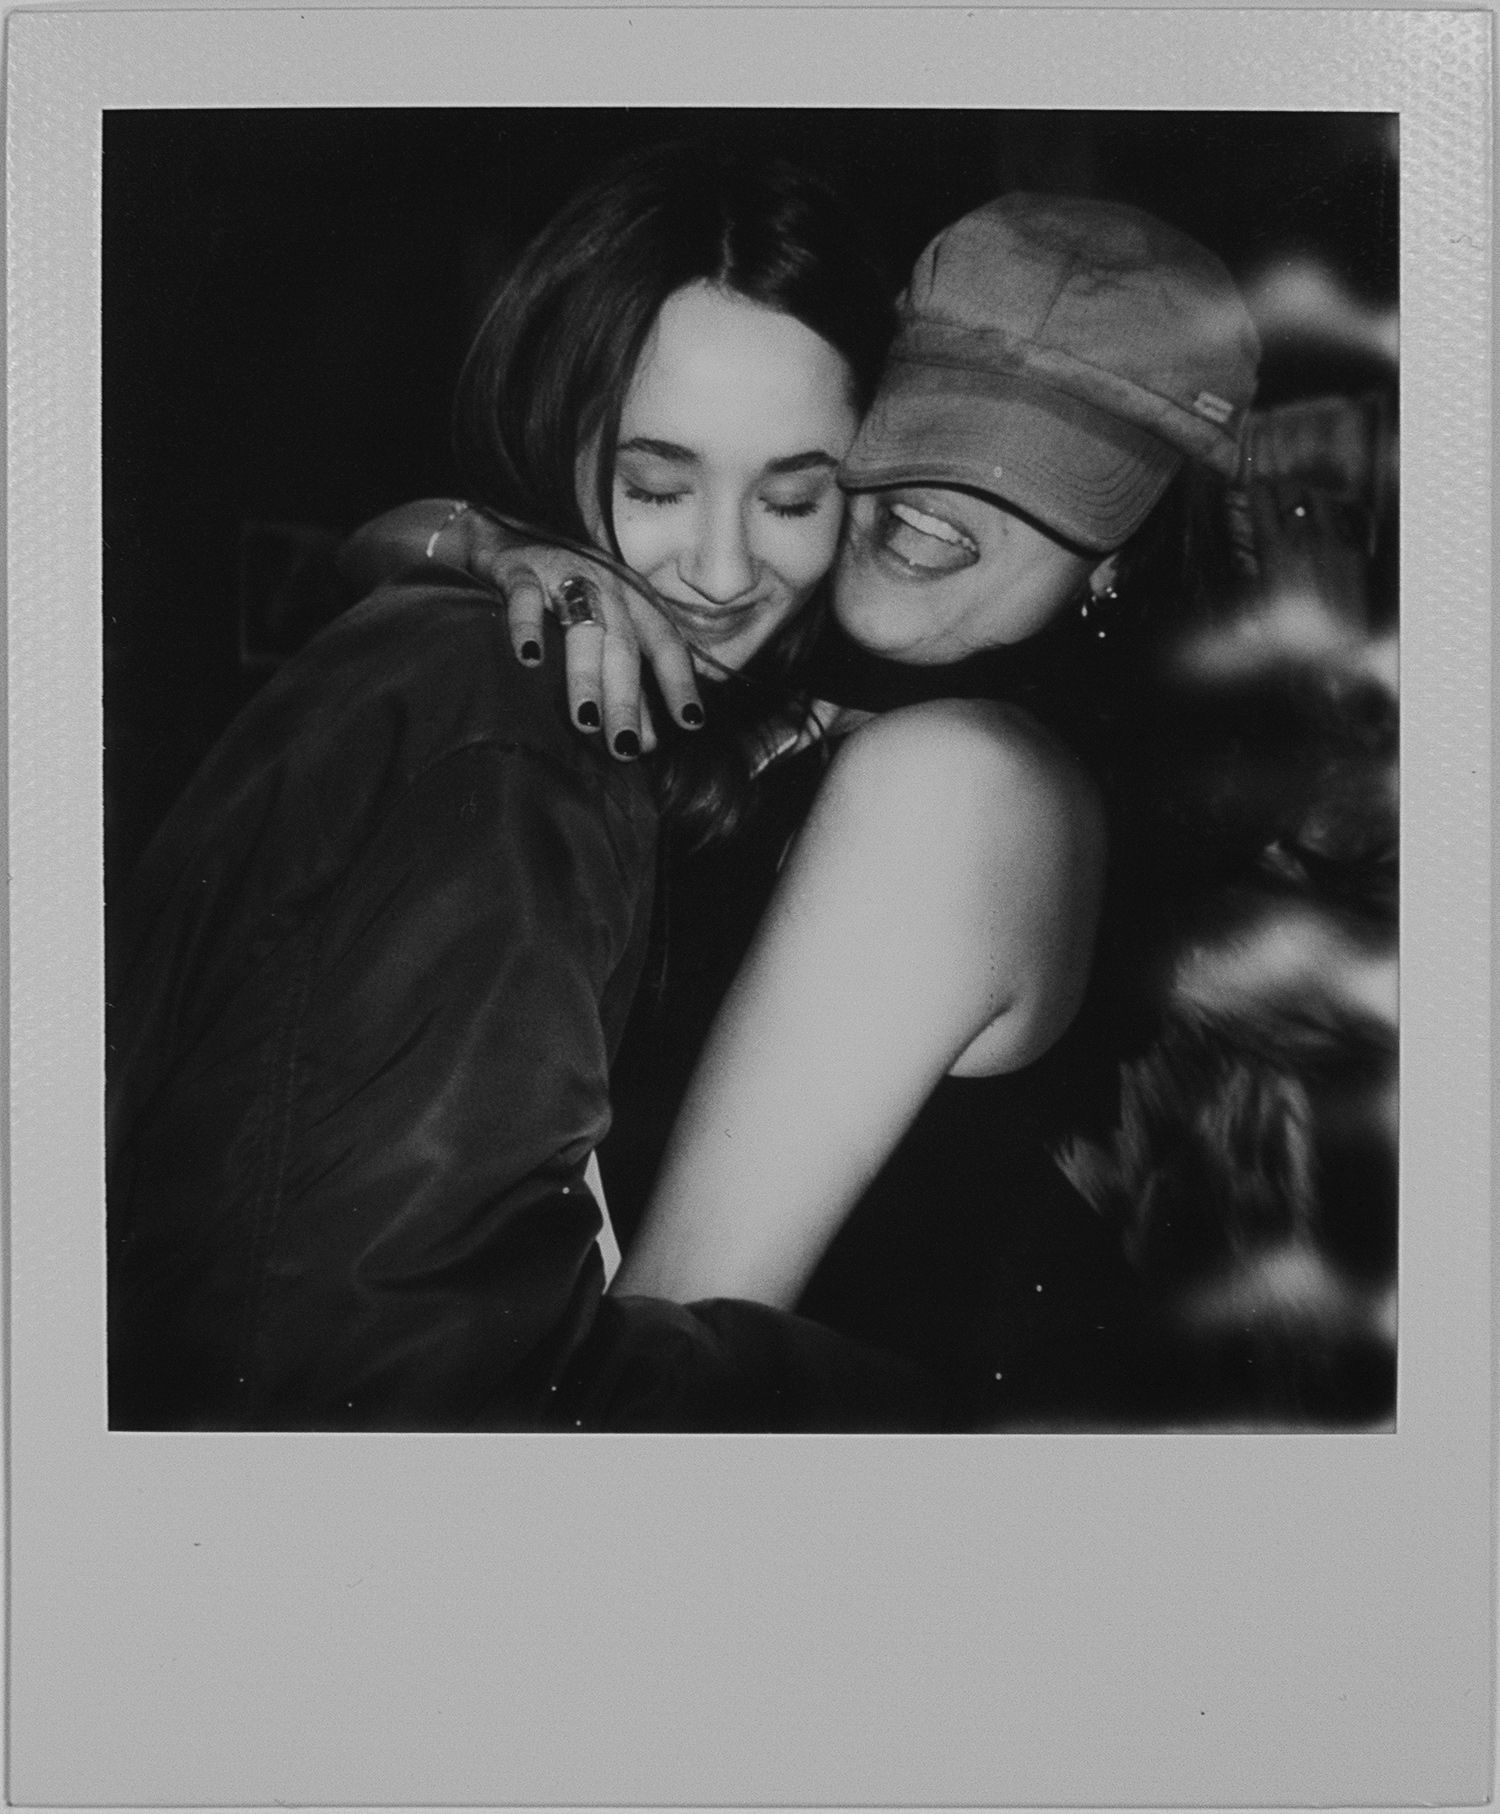 PYLOT ISSUE 04 LAUNCH PARTY IMPOSSIBLE PROJECT 05